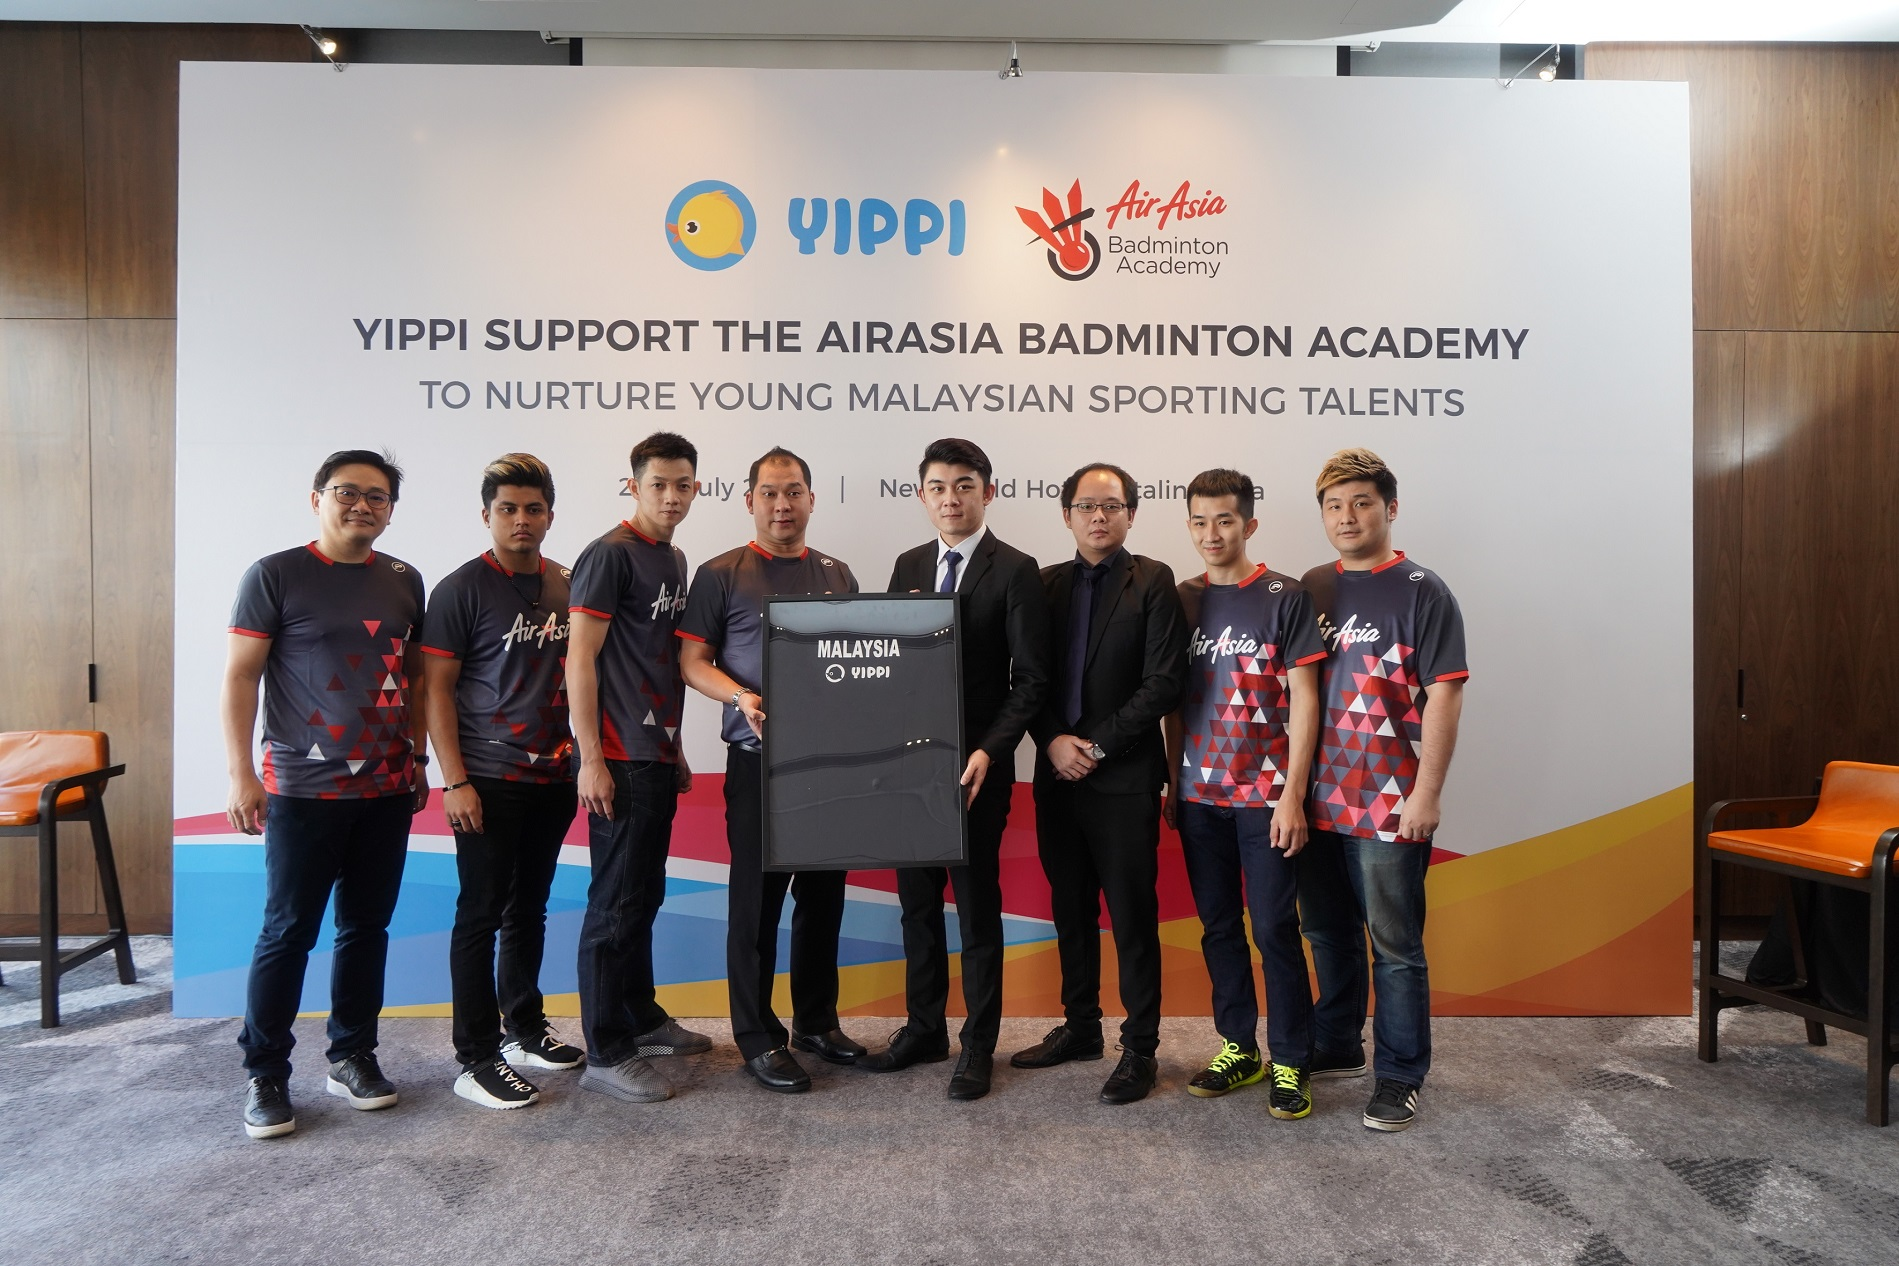 Image 3 – (Forth and fifth from left) Jason Lim, President of AirAsia Badminton Academy and Tan Fei, Business Development Manager of Toga Limited together with several of the national badminton players new 3